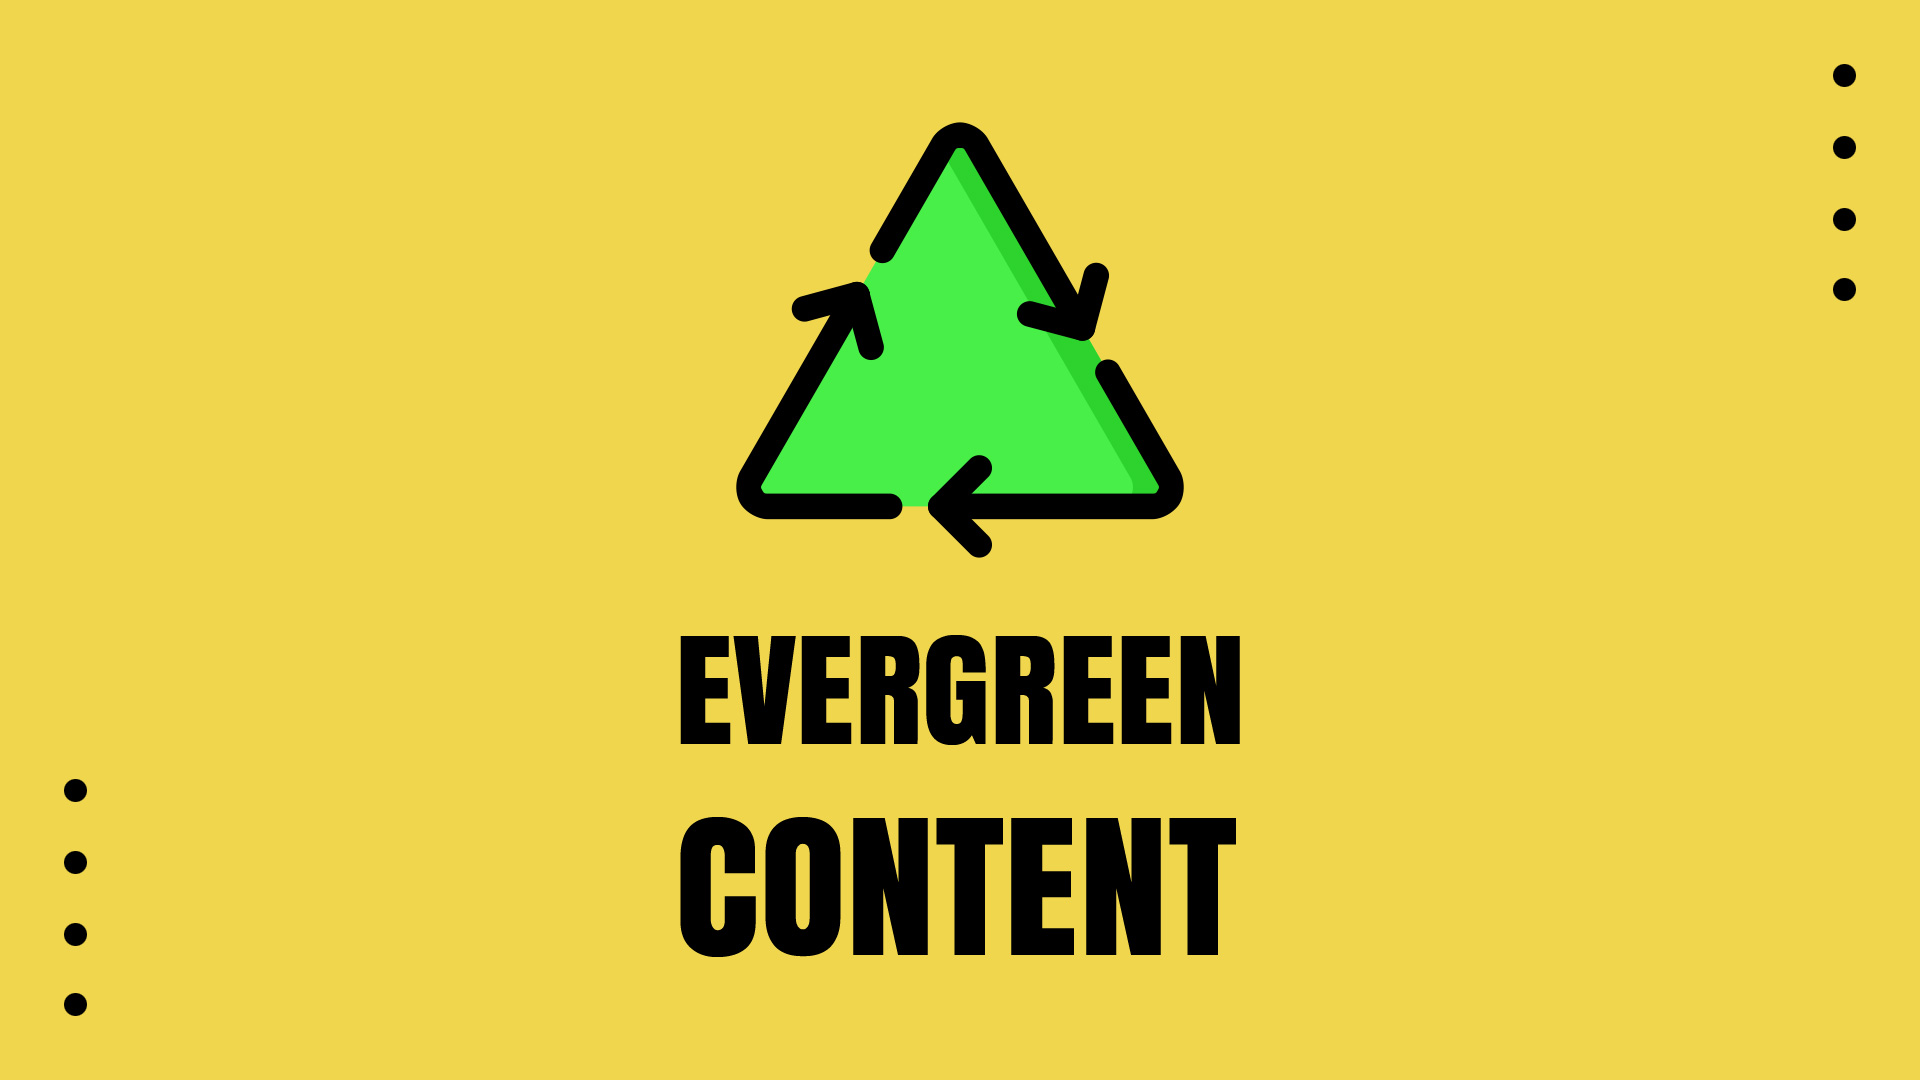 The Evergreen Content on a yellow background